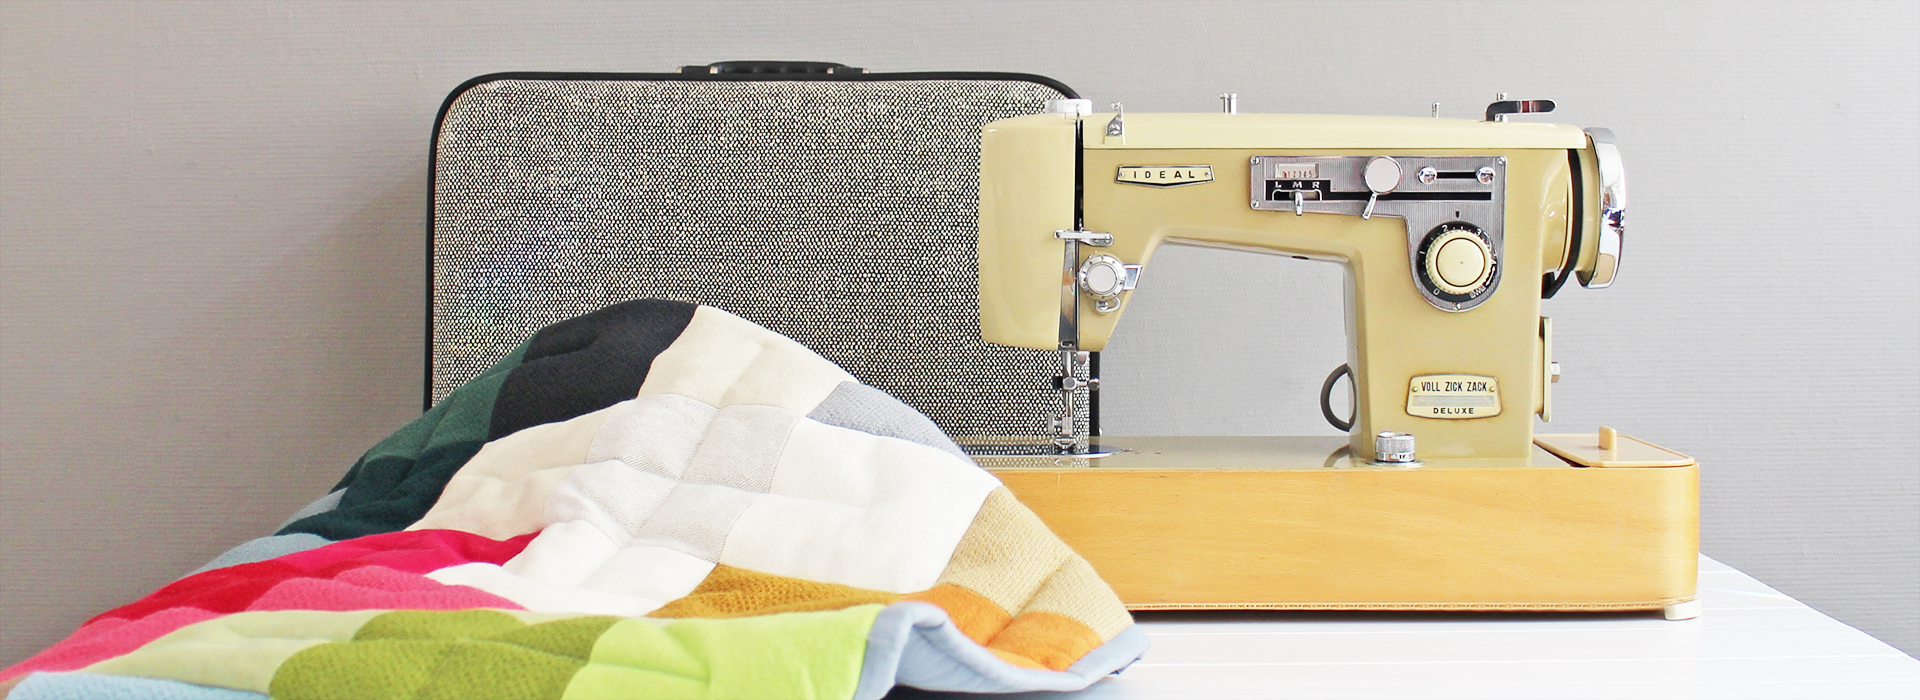 Sewing, Woodworking & More